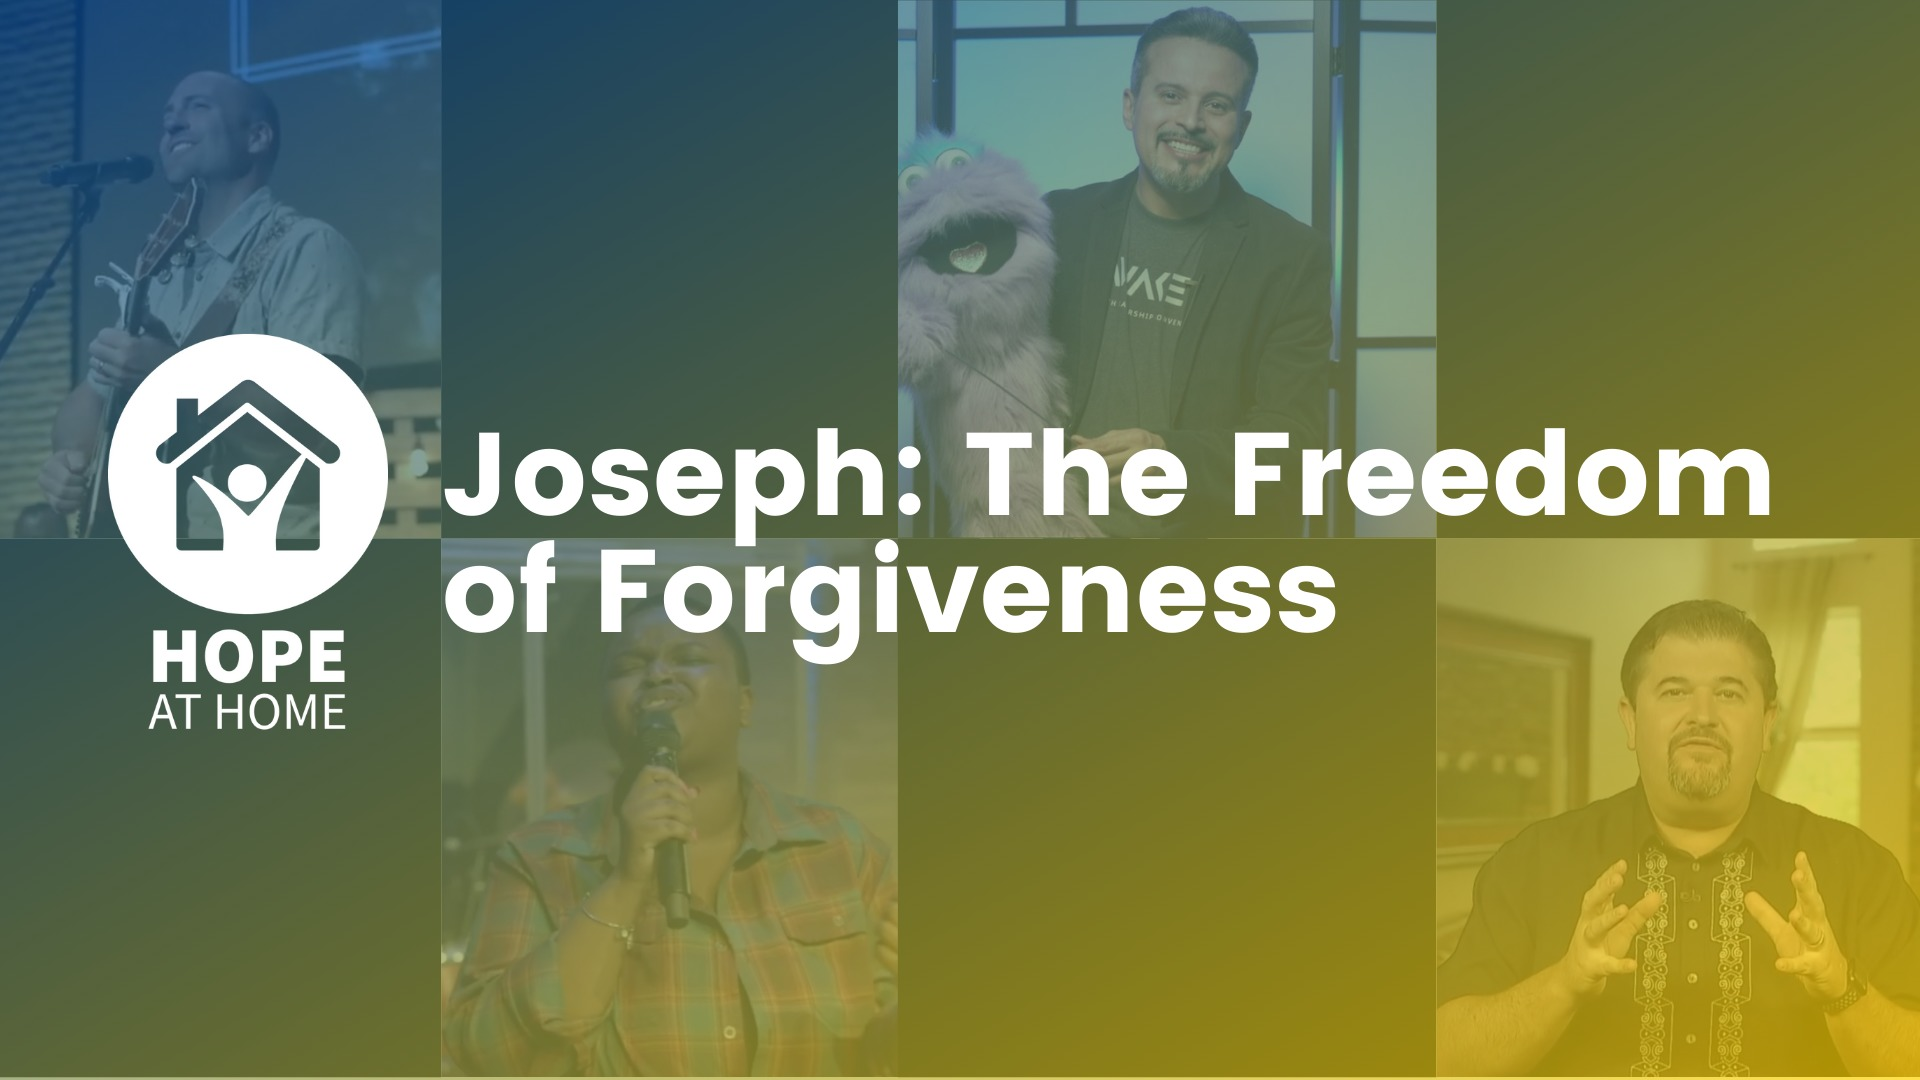 Joseph: The Freedom of Forgiveness